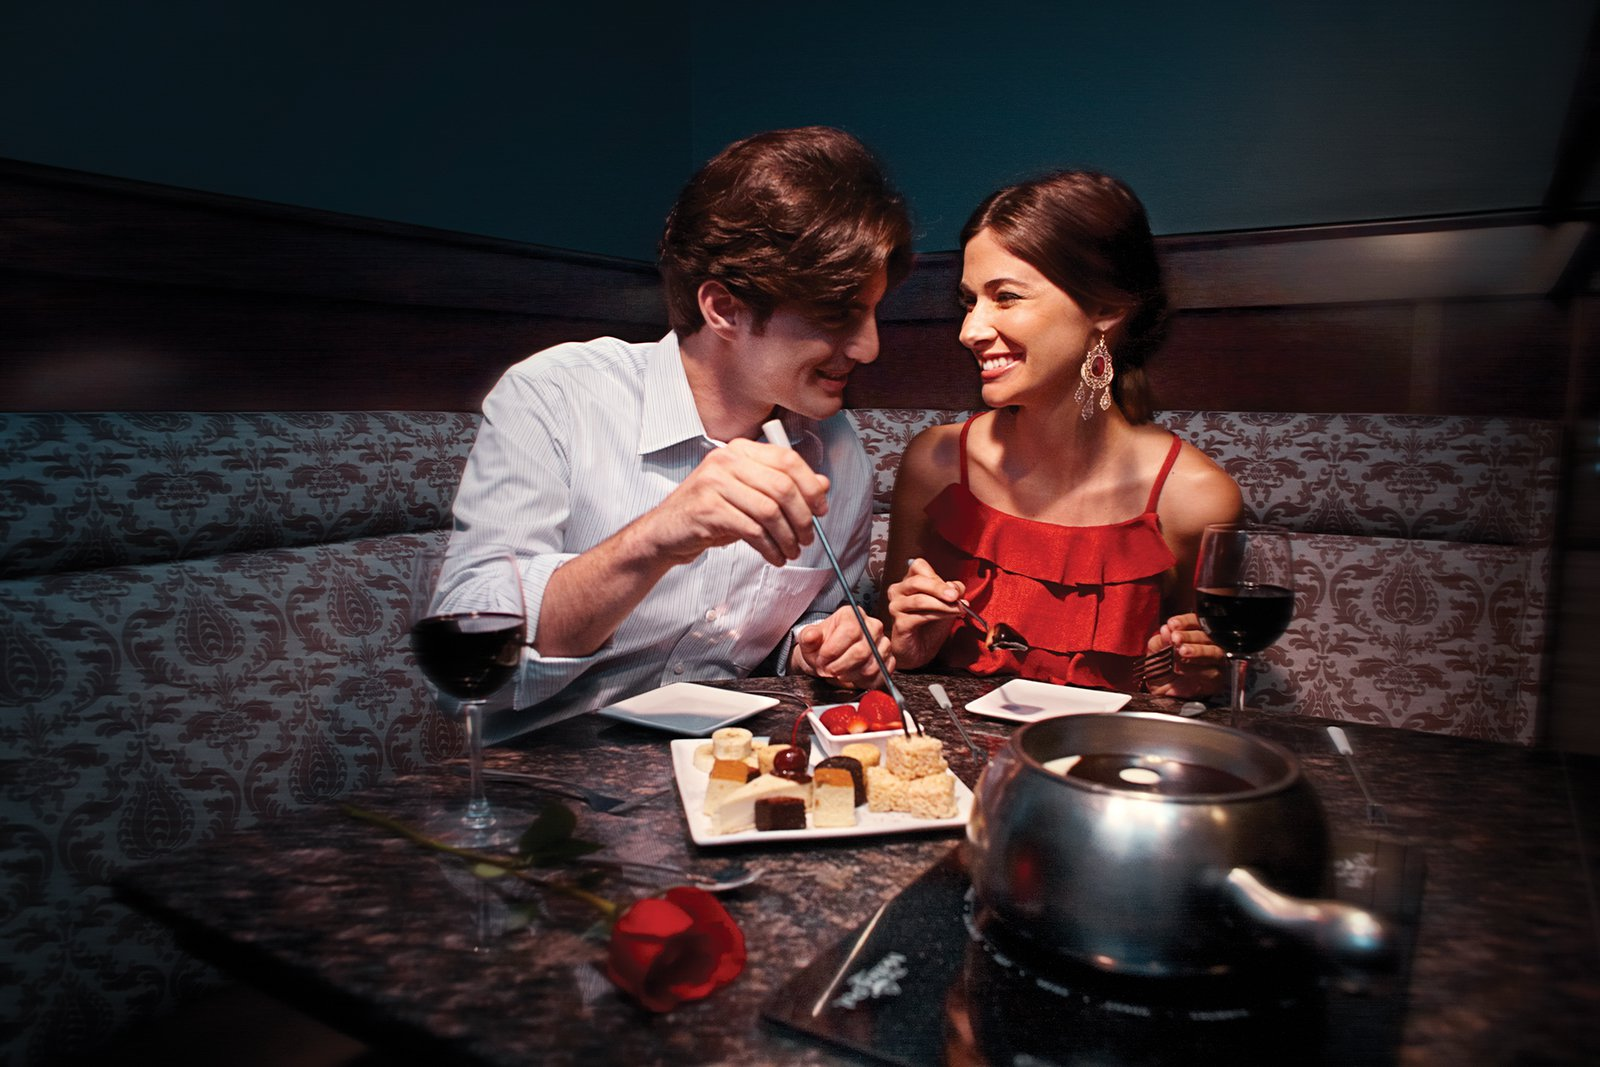 the melting pot events and specials in palm beach gardens fl